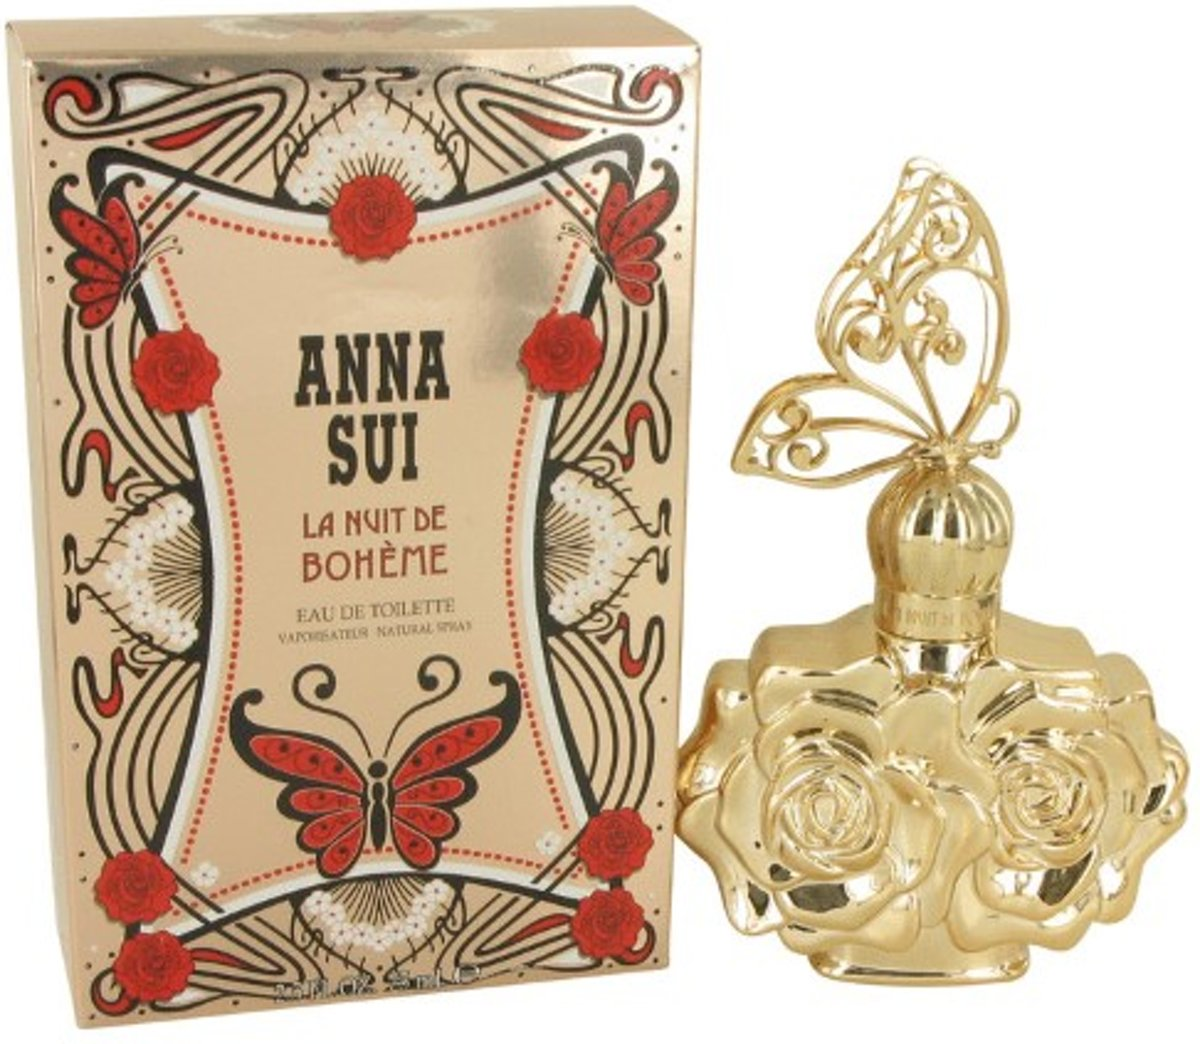 Anna Sui La Nuit De Boheme 30 ml - Eau De Toilette Spray Women